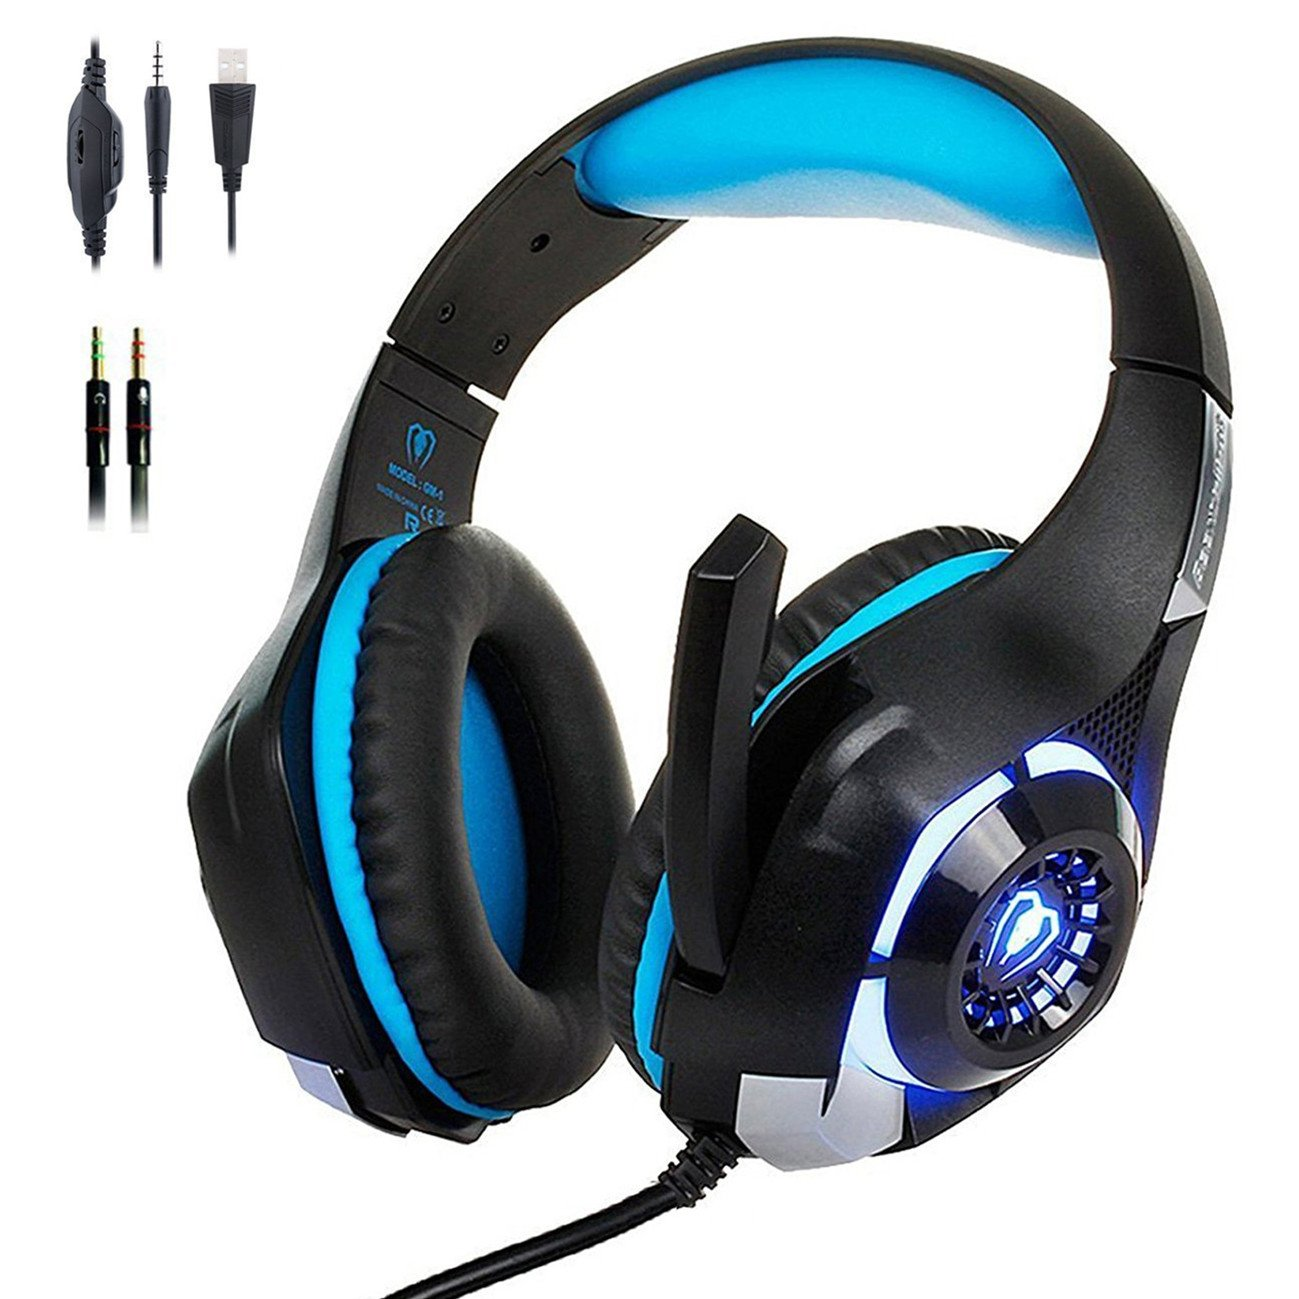 Wireless Gaming Headphone Bluetooth PC Laptop PS4 XBox One Headset LED Light 889328995744